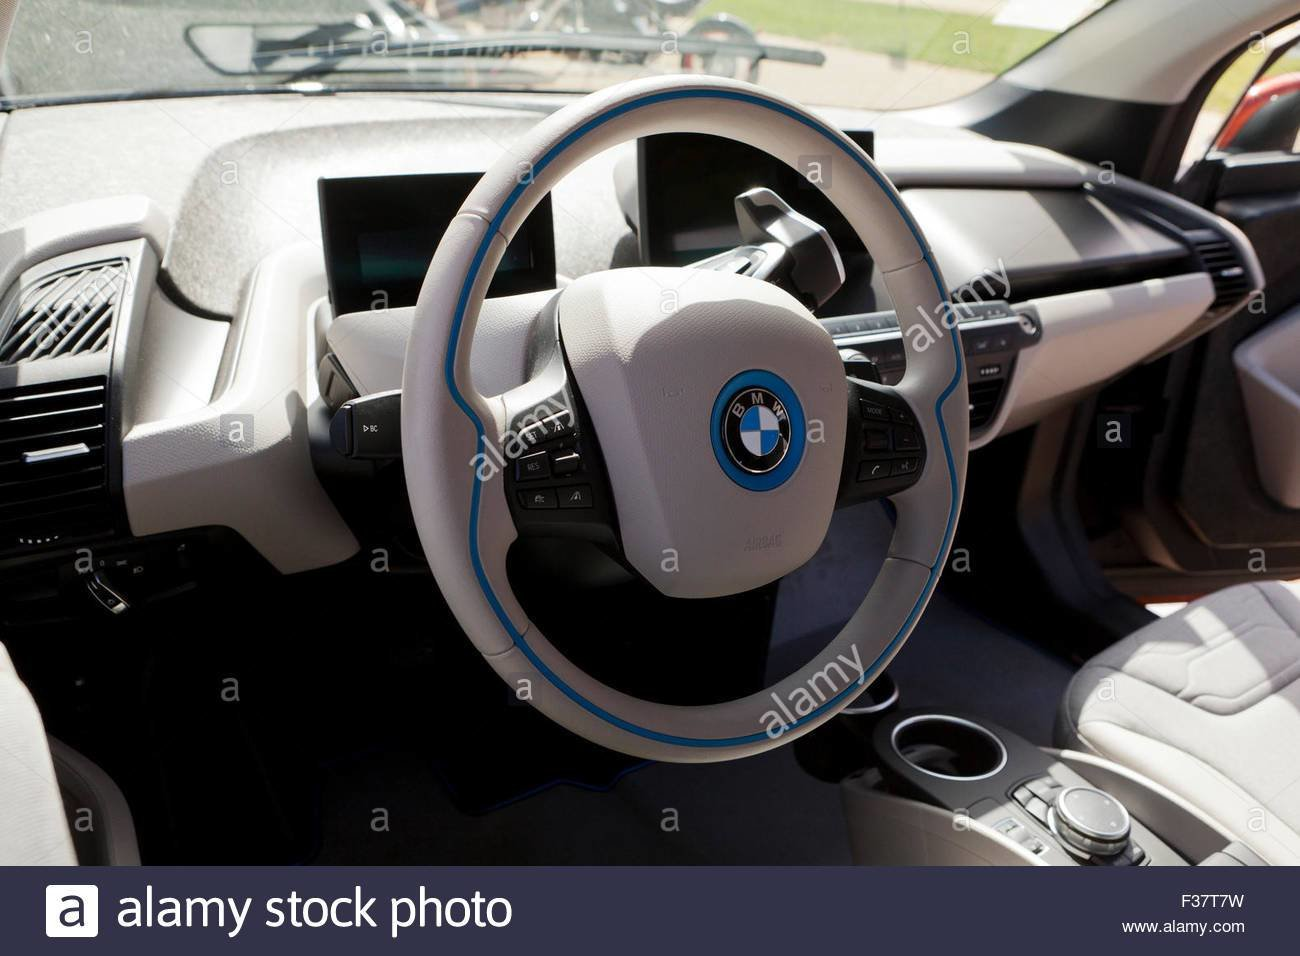 Latest Bmw I3 Electric Car Interior Usa Stock Photo Royalty Free Download